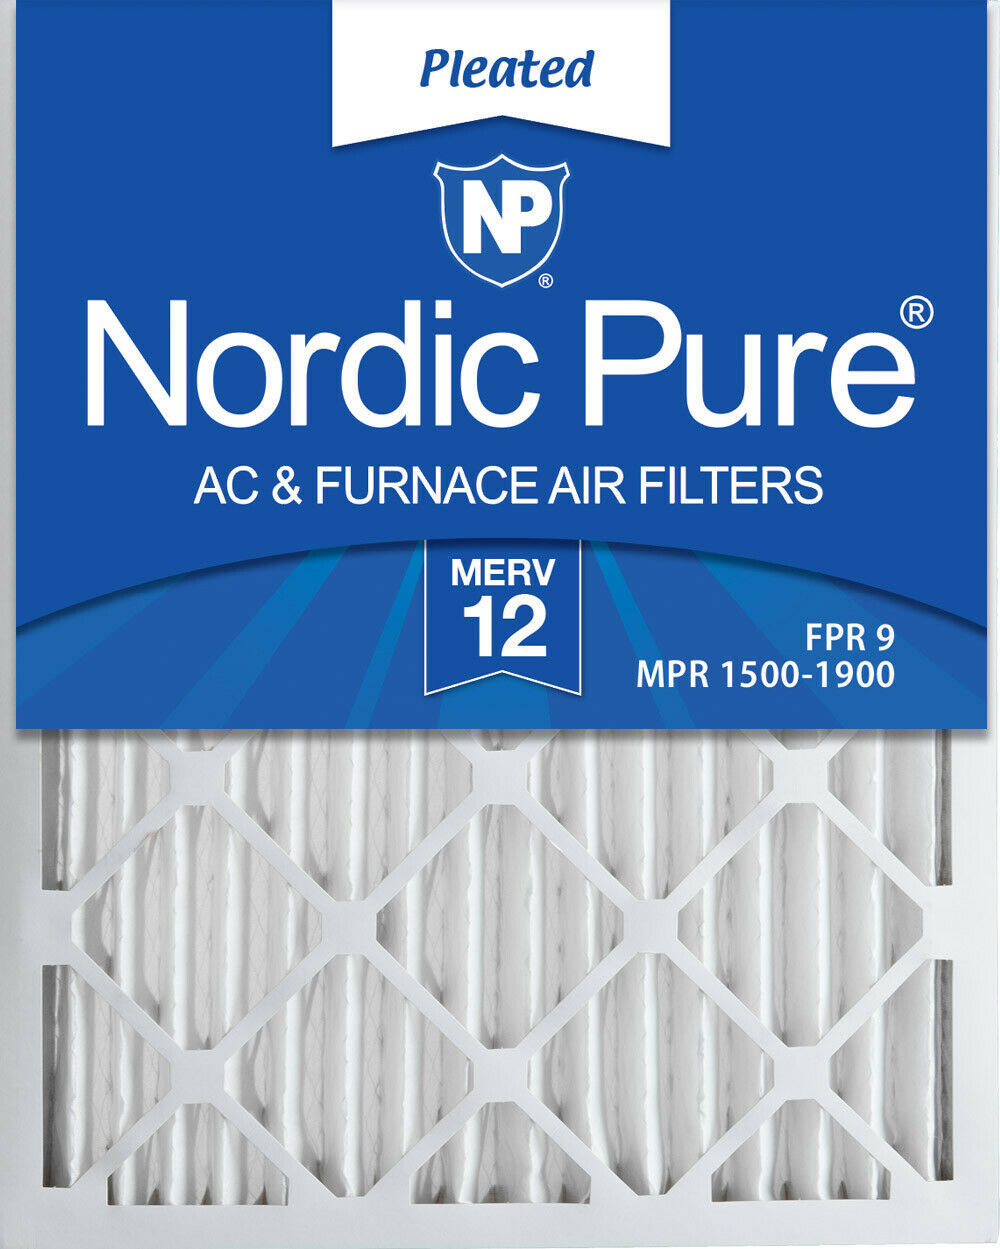 Nordic Pure 24x30x2 Pleated MERV 12 Air Filters 3 Pack - $52.32